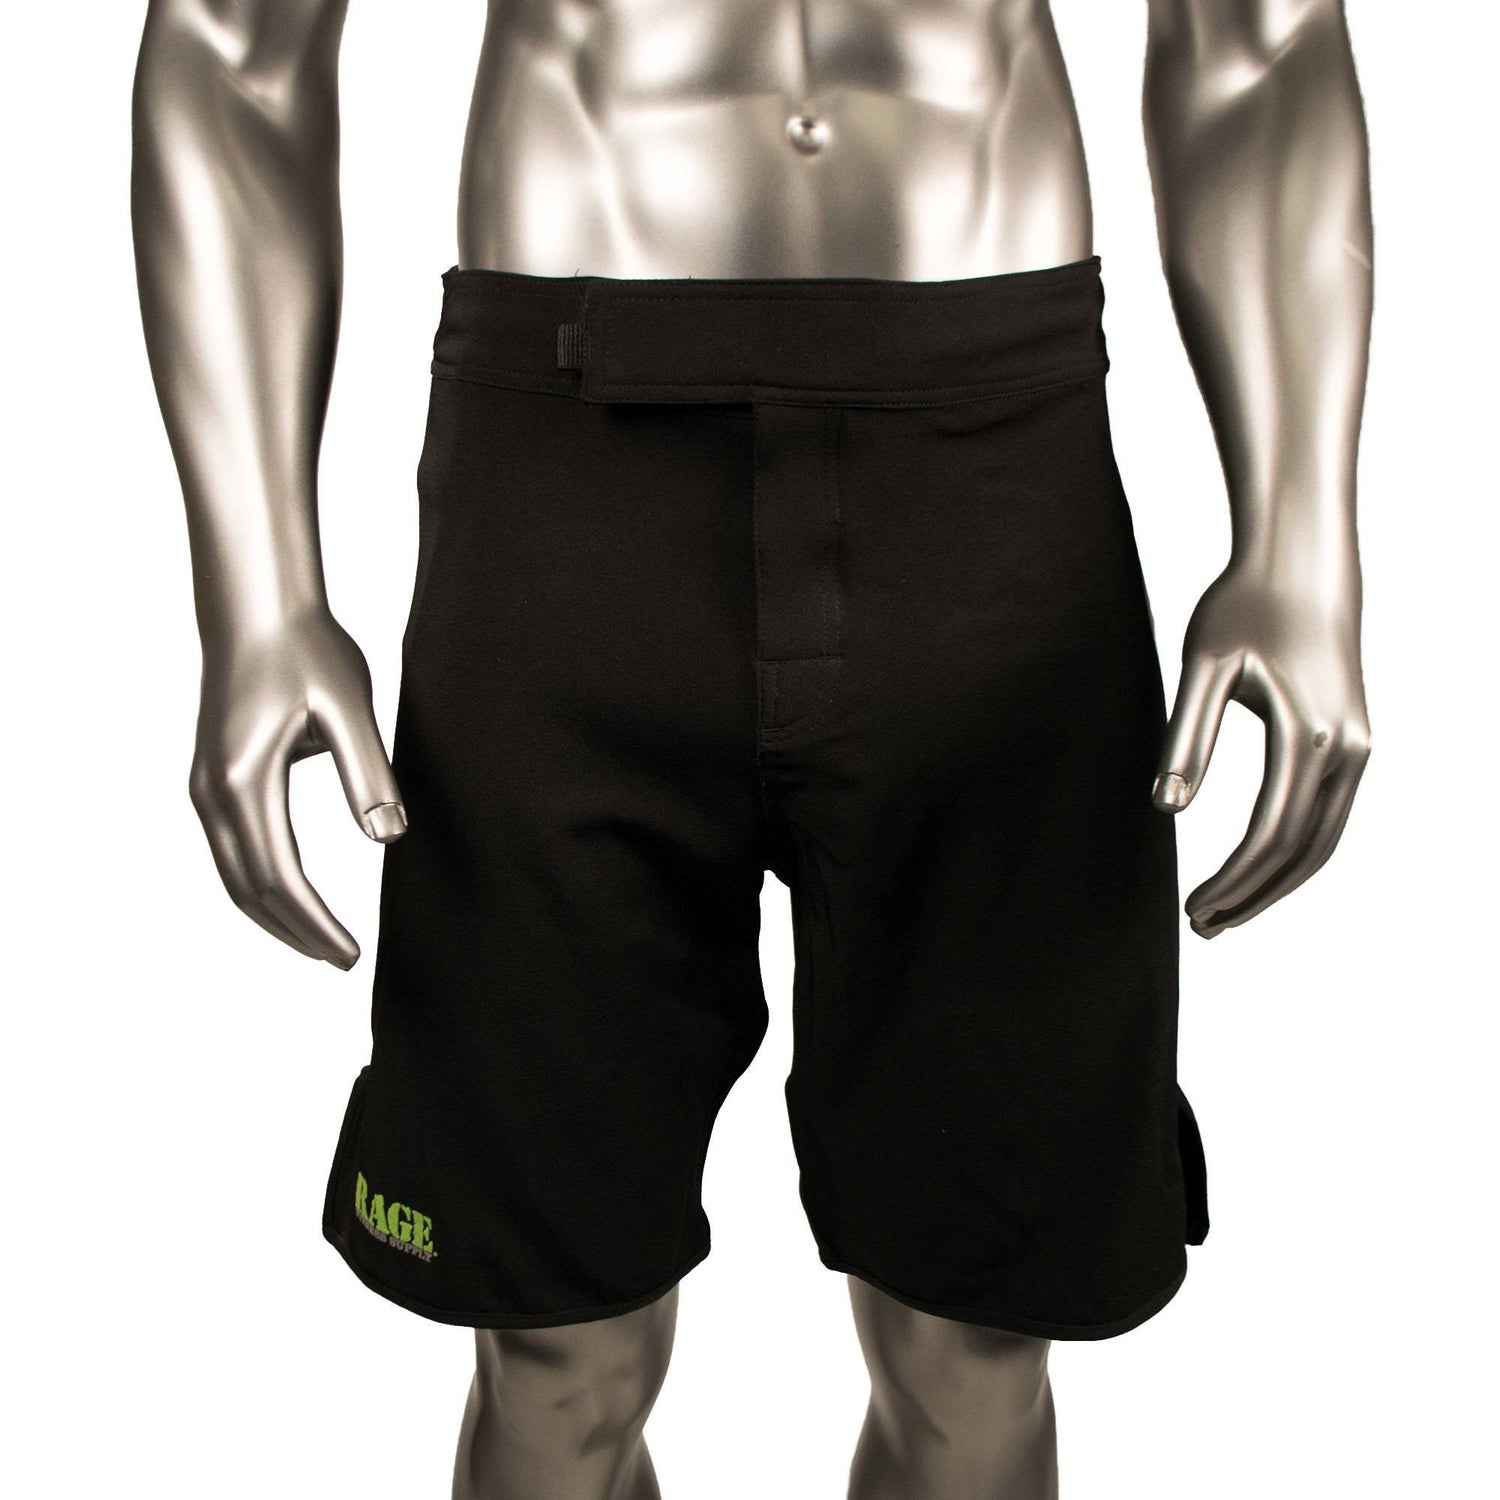 Rage Men's Fight Shorts - RAGE Fitness